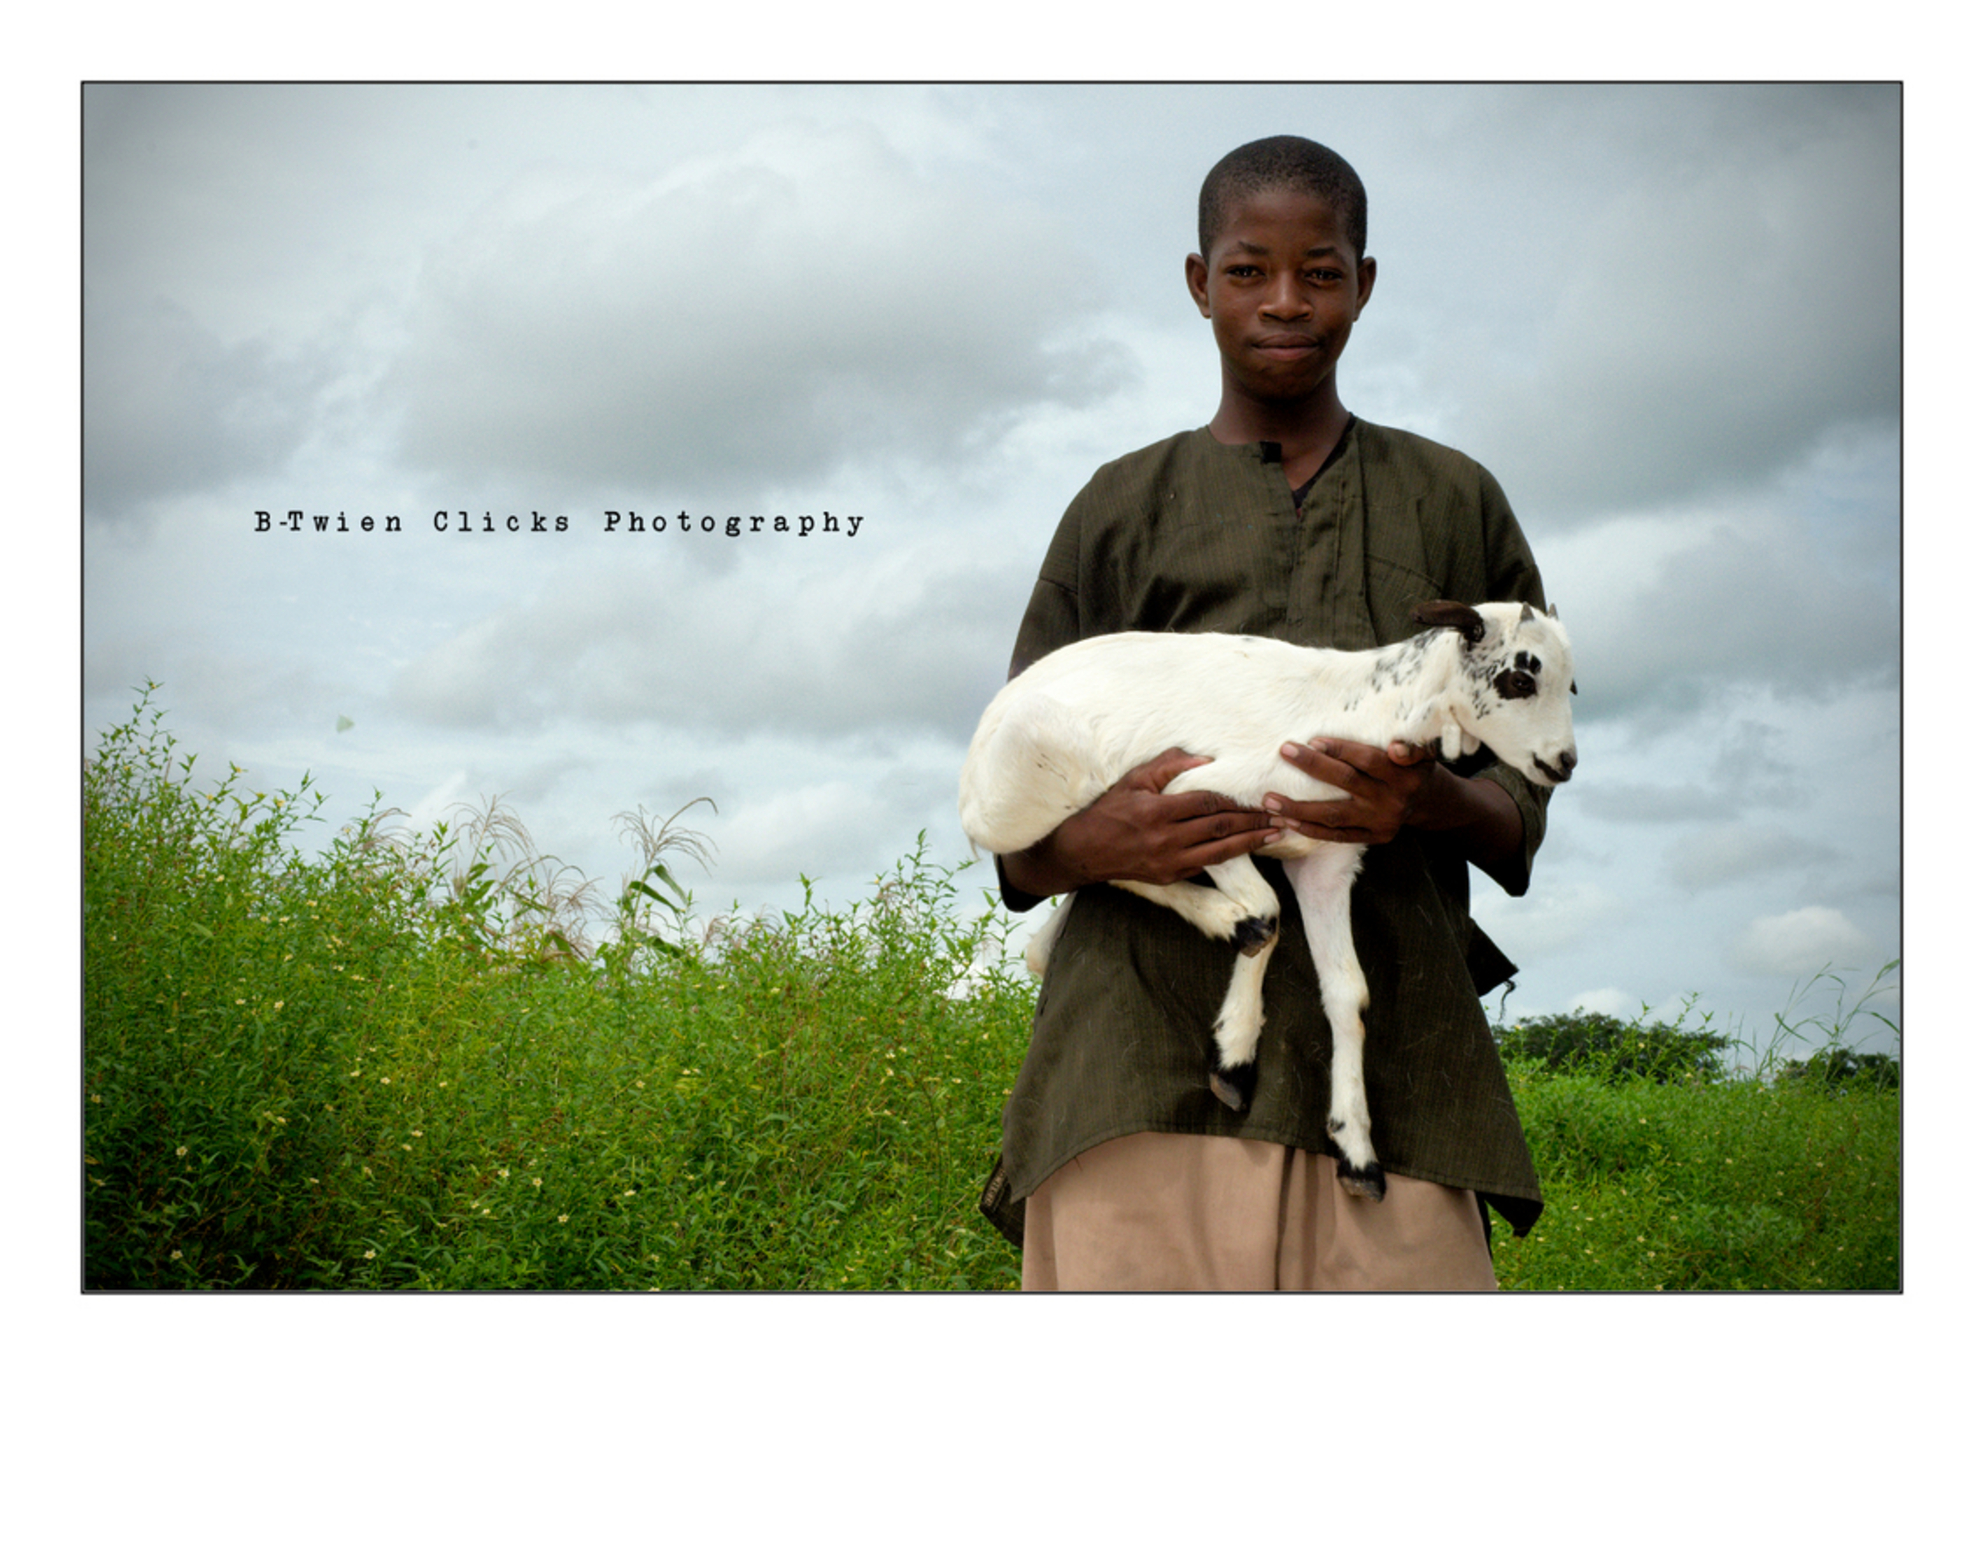 Shepherd Boy - Had the privilege to accompany this young shepherd boy during his work day.  It was fun to learn what a shepherd boy does all day, we even played c - foto door ancoewien op 18-05-2012 - deze foto bevat: nature, cows, mali, shepherd